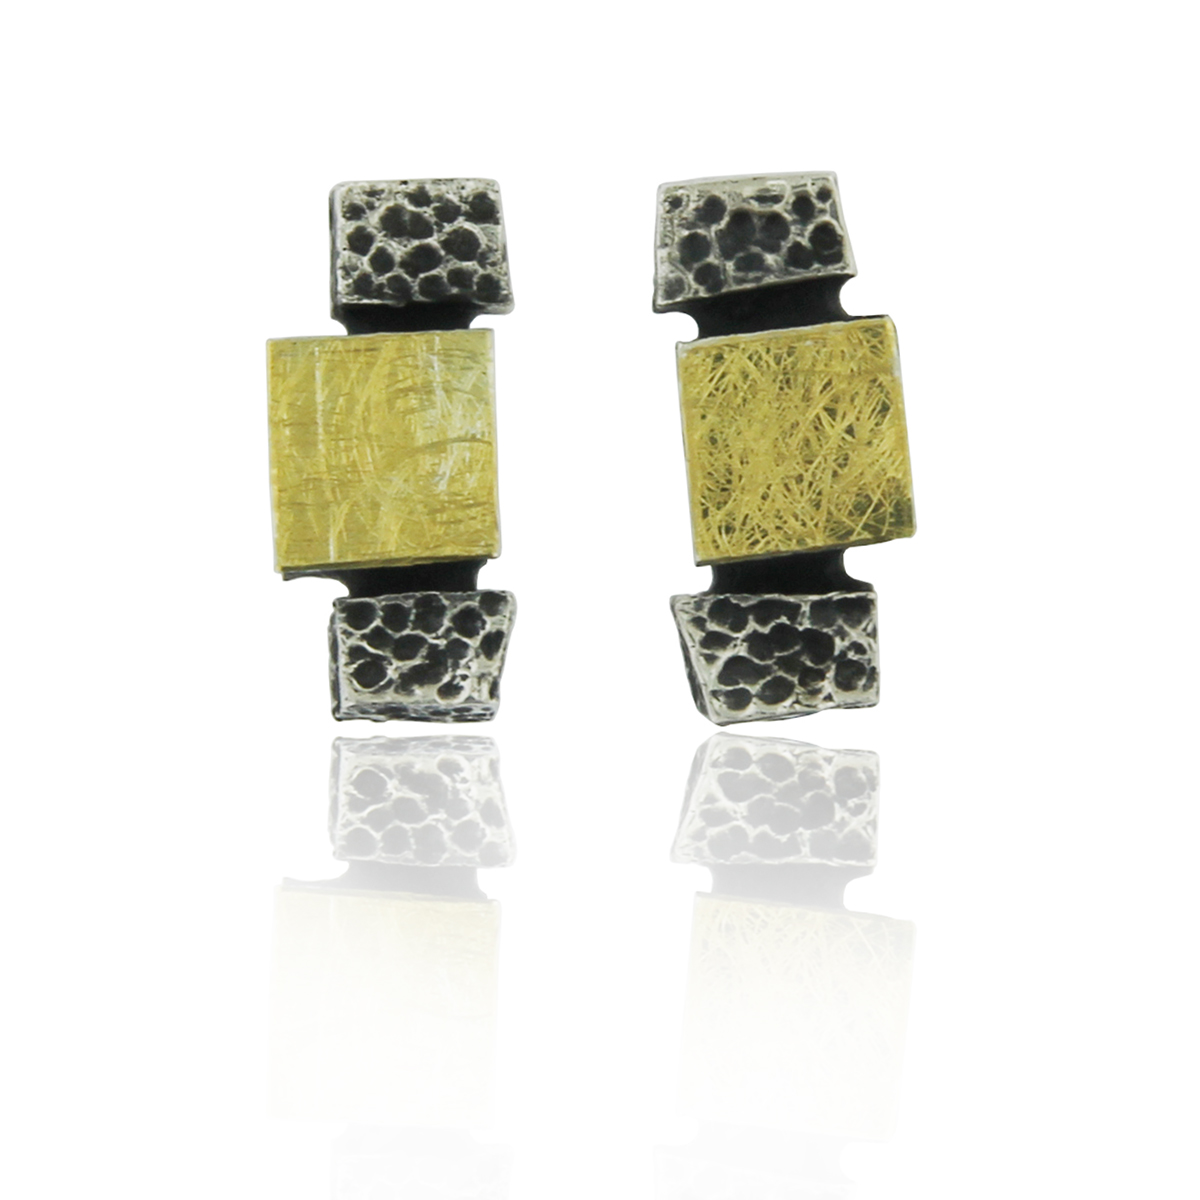 castle-rocks-and-jewelry-silver-and-gold-earrings-audar